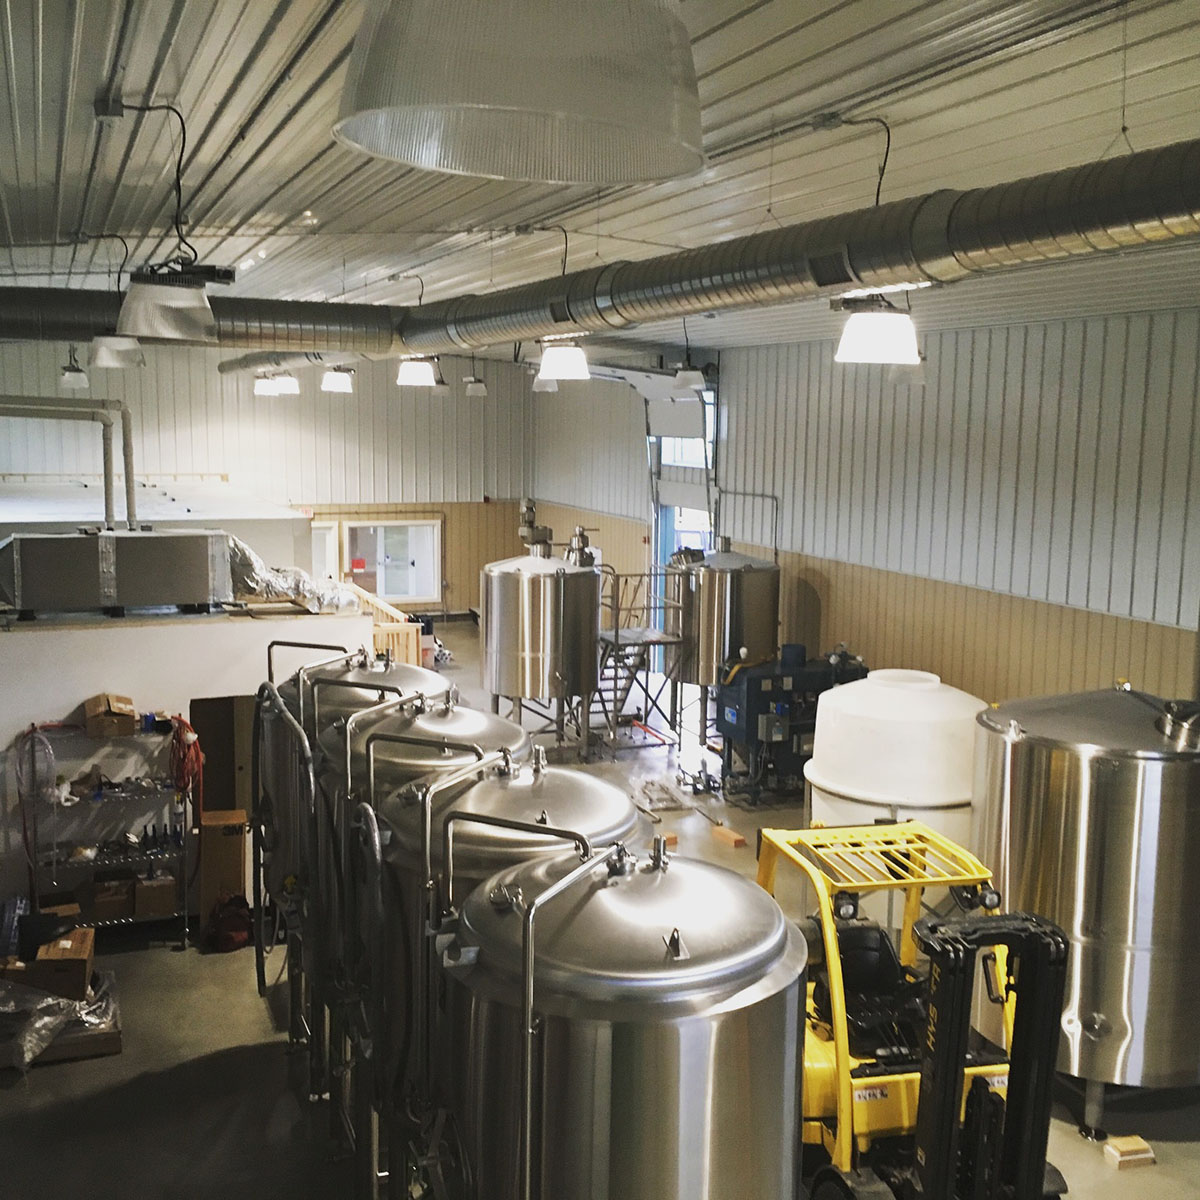 The brewhouse floor at Untold Brewing in Scituate